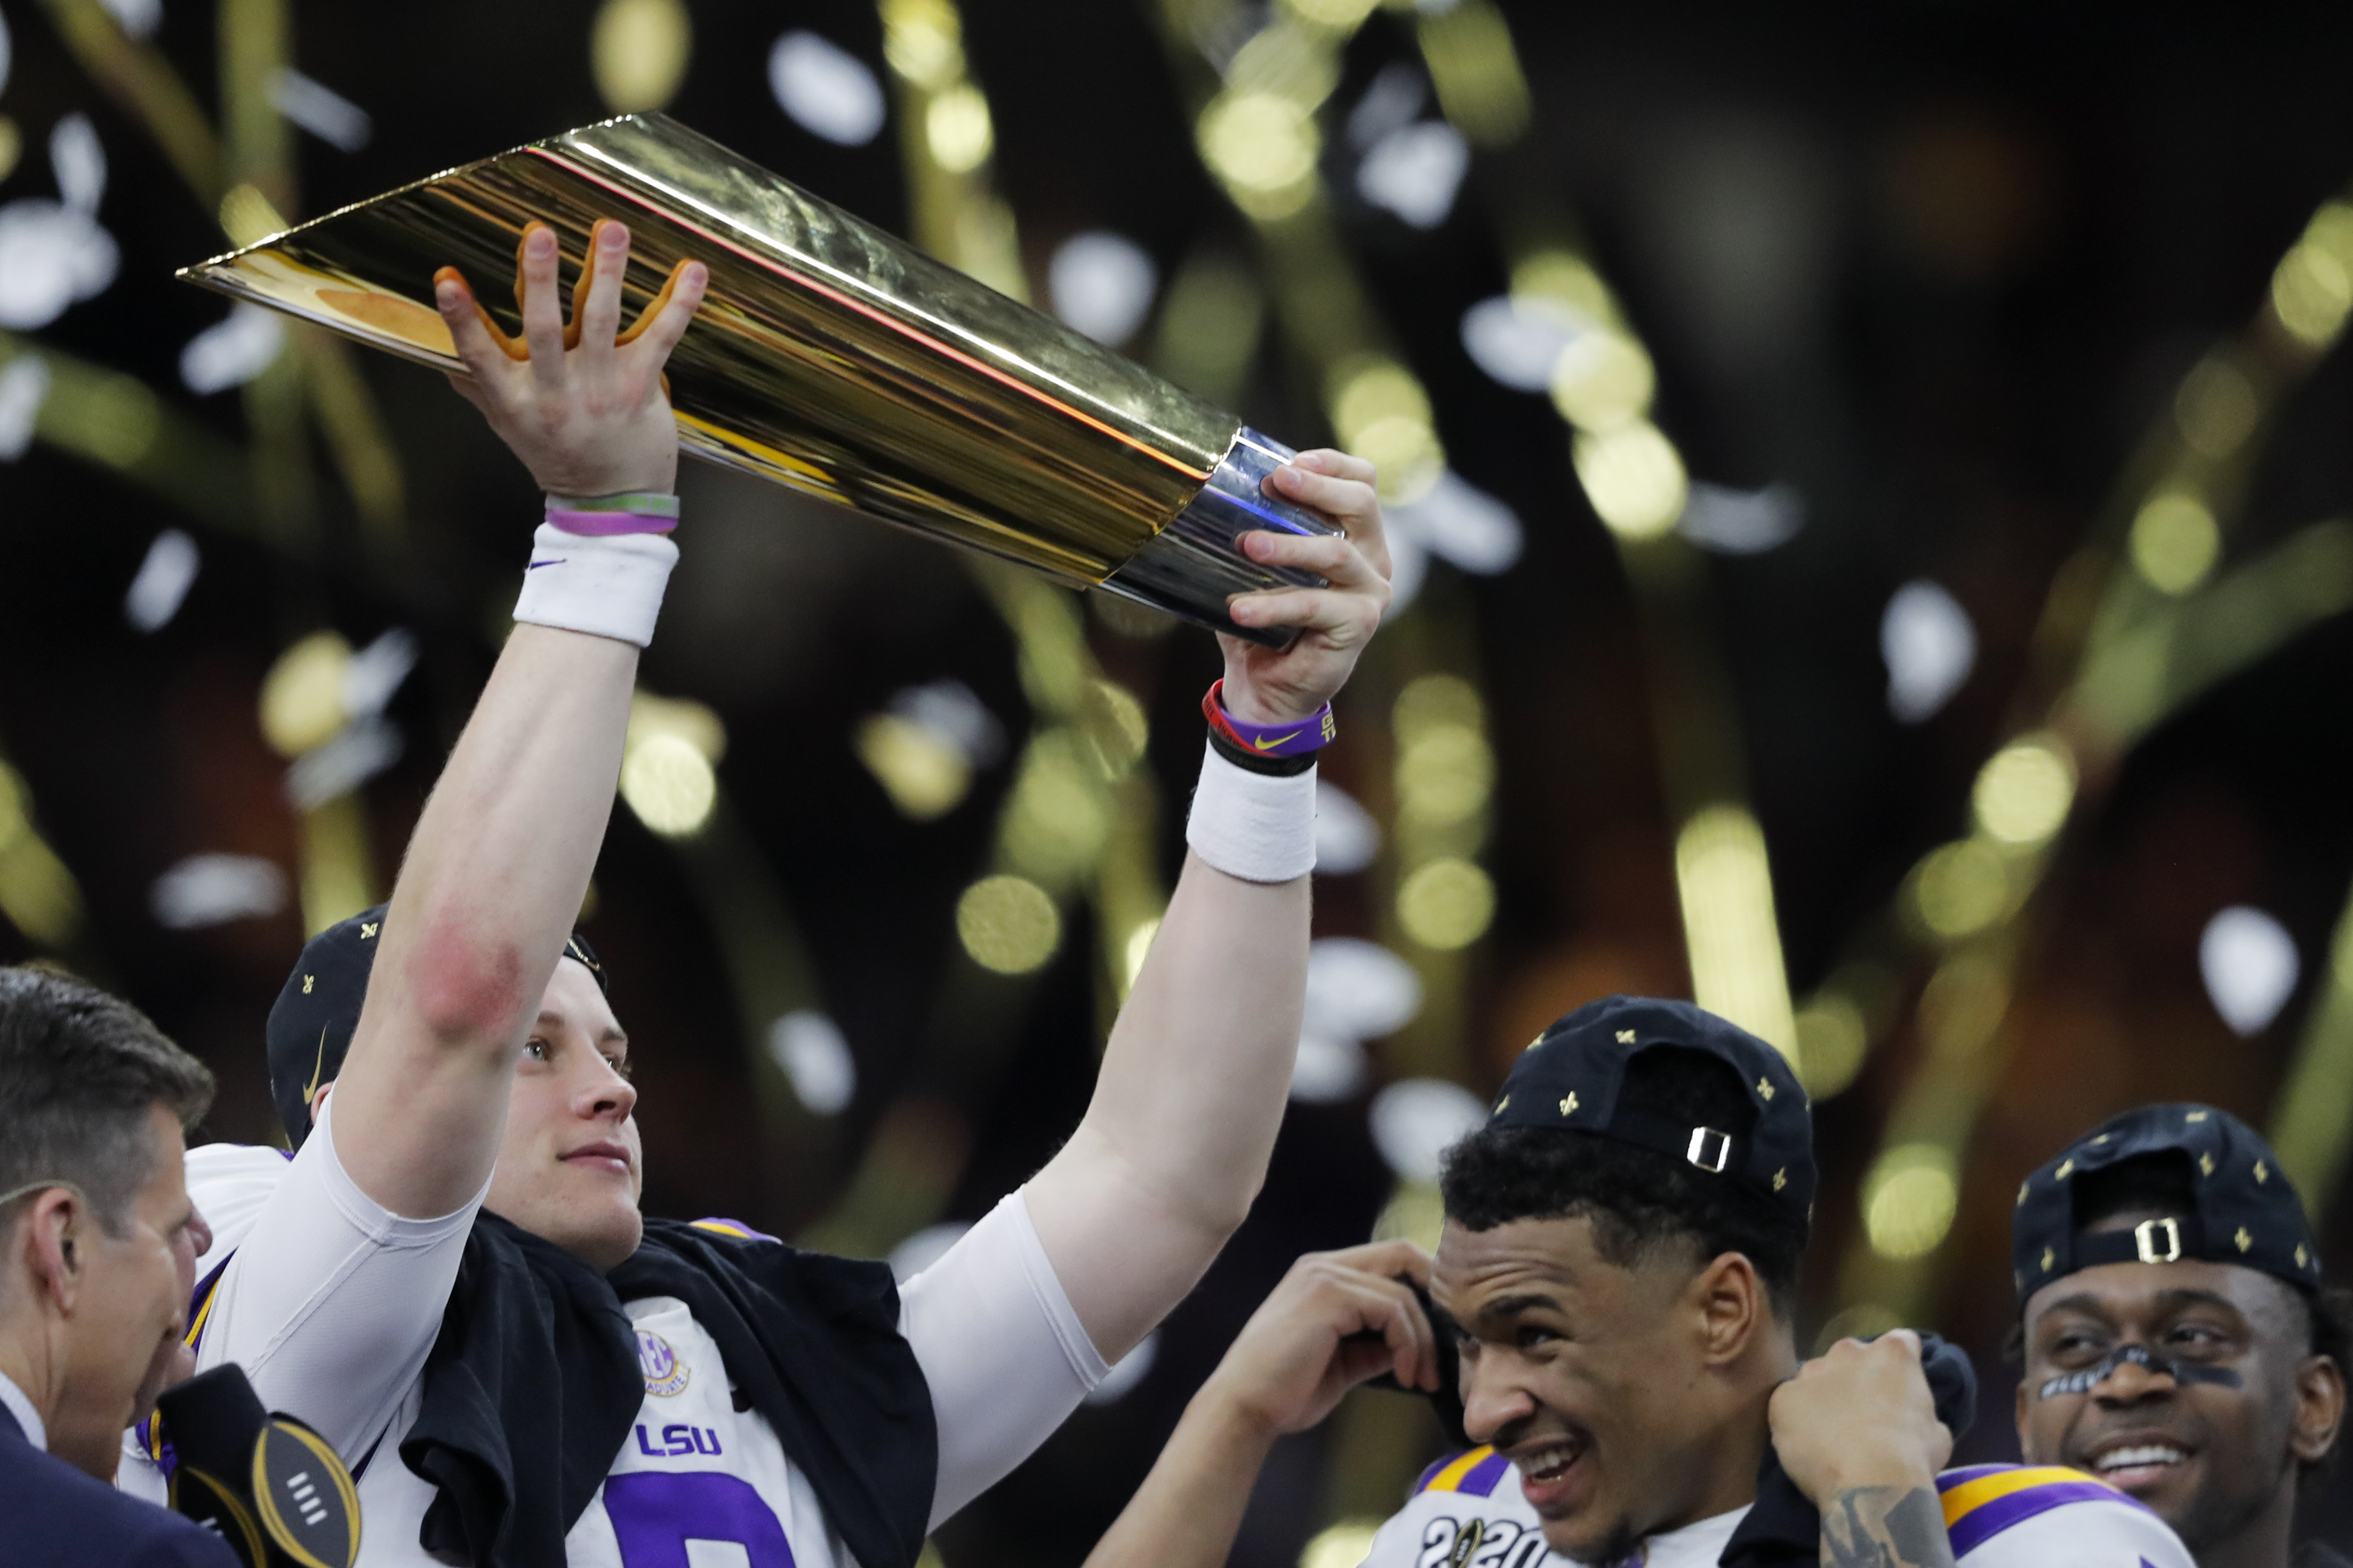 LSU quarterback Joe Burrow holds the trophy as safety Grant Delpit looks on after a NCAA College Football Playoff national championship game against Clemson, Monday, Jan. 13, 2020, in New Orleans. LSU won 42-25. (AP Photo/Gerald Herbert)